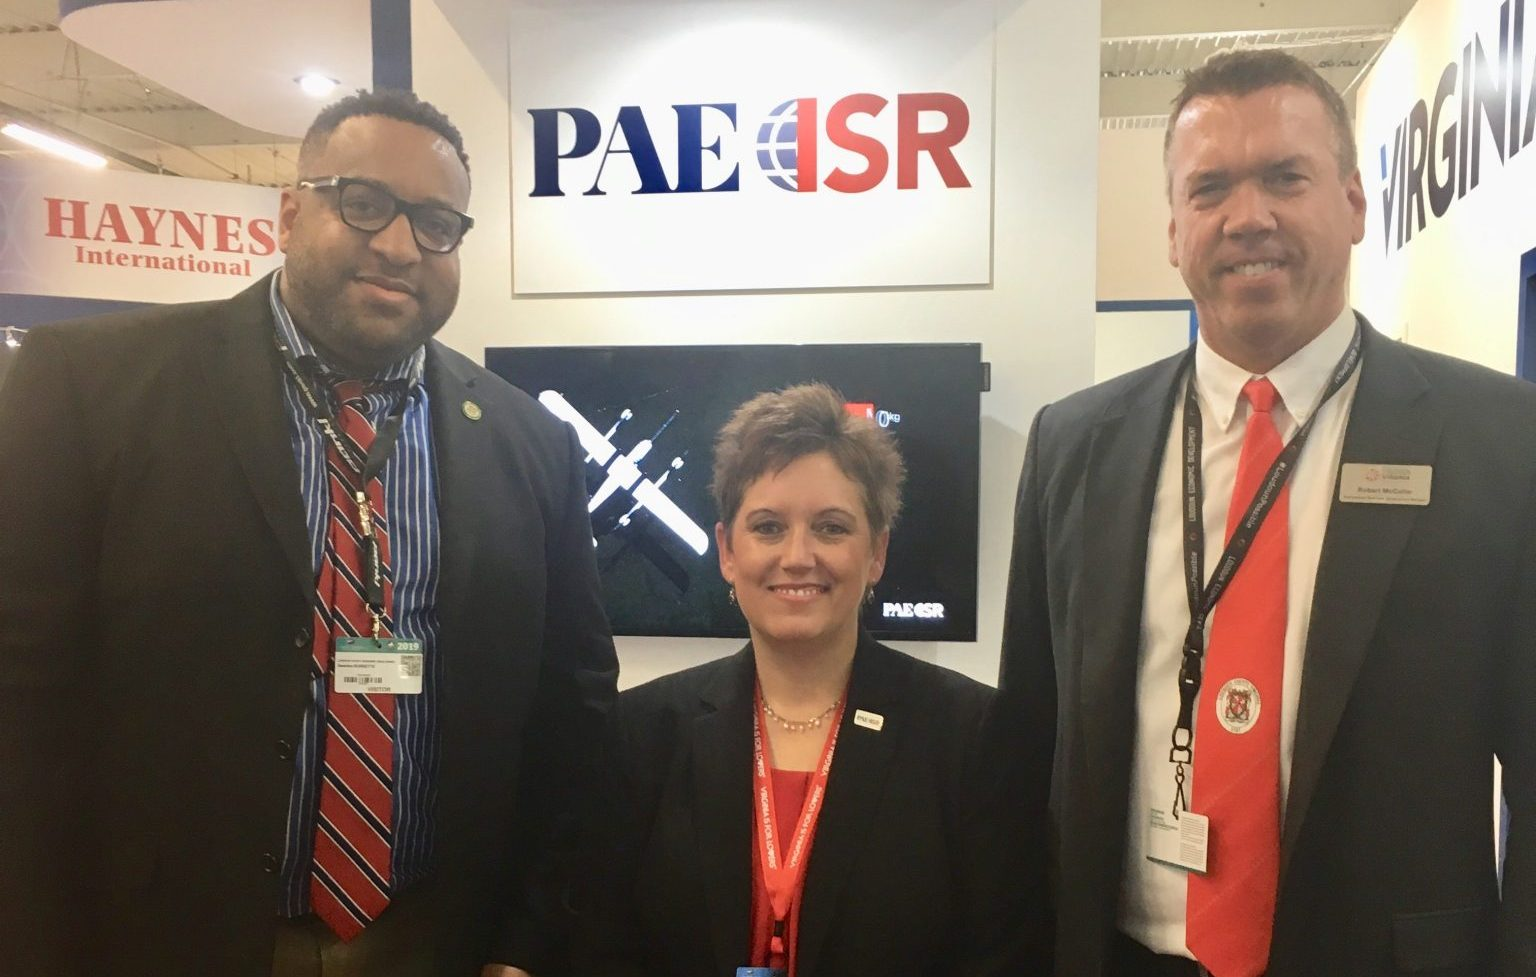 PAE ISR Beth Beach, valet program, vedp paris air show 2019